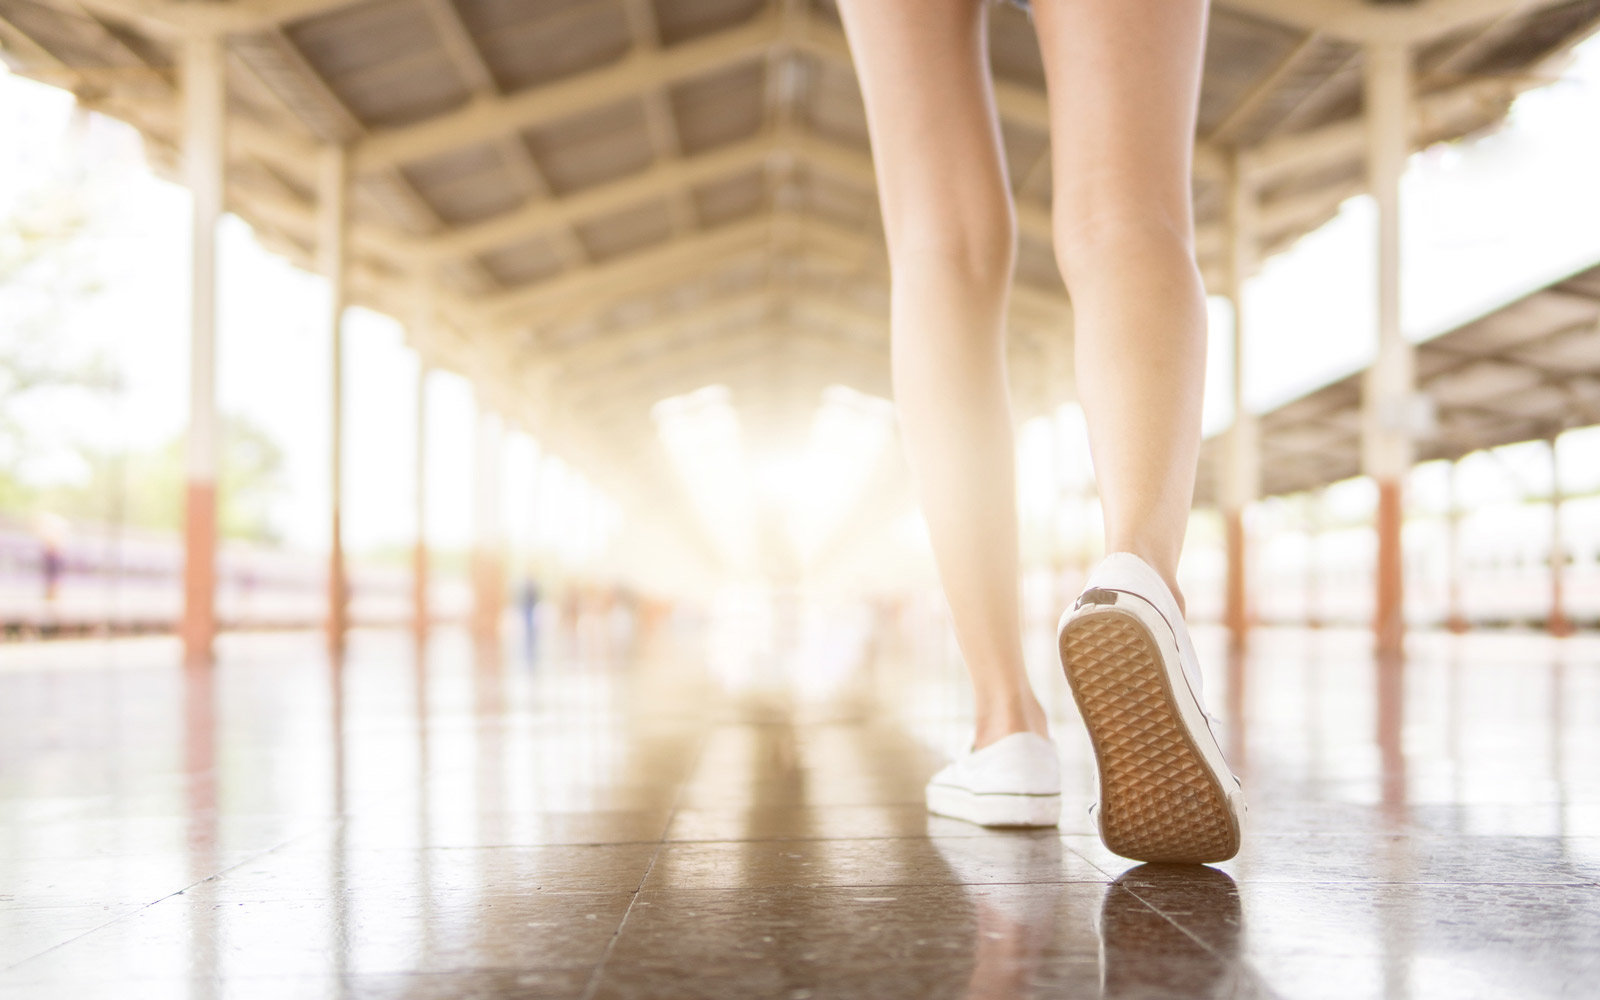 Low Section Of Woman Walking On Floor